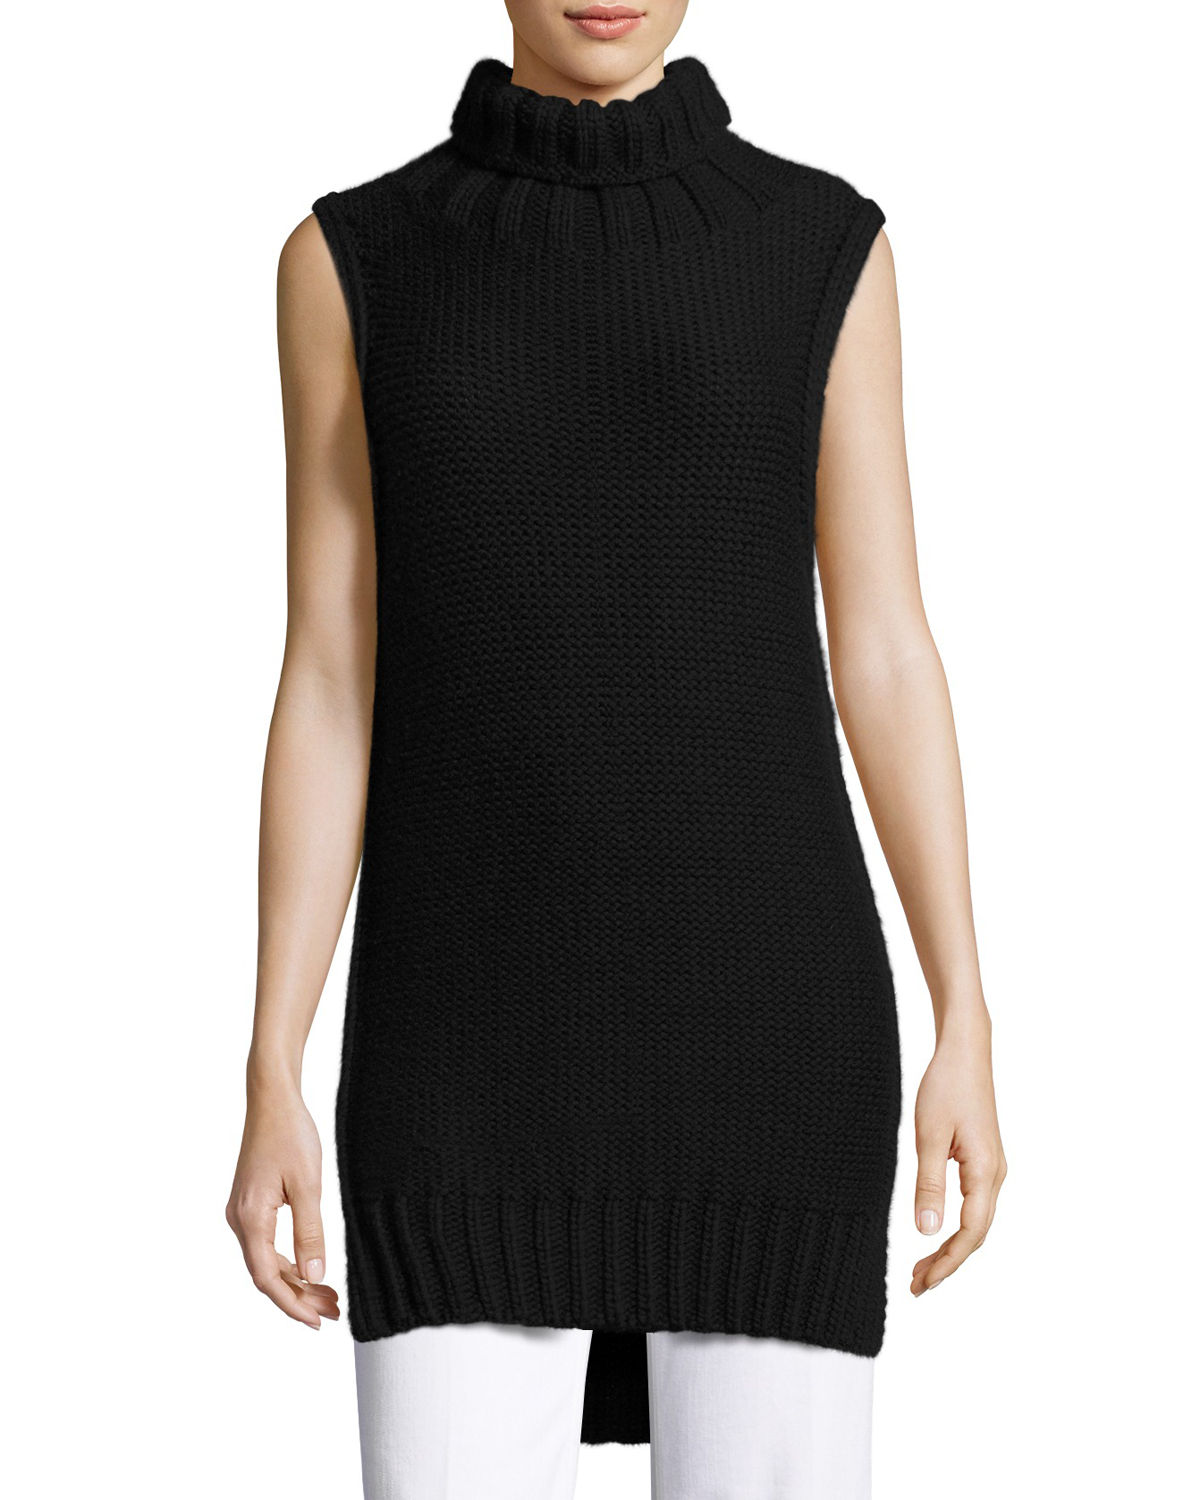 how to wear a sleeveless turtleneck sweater